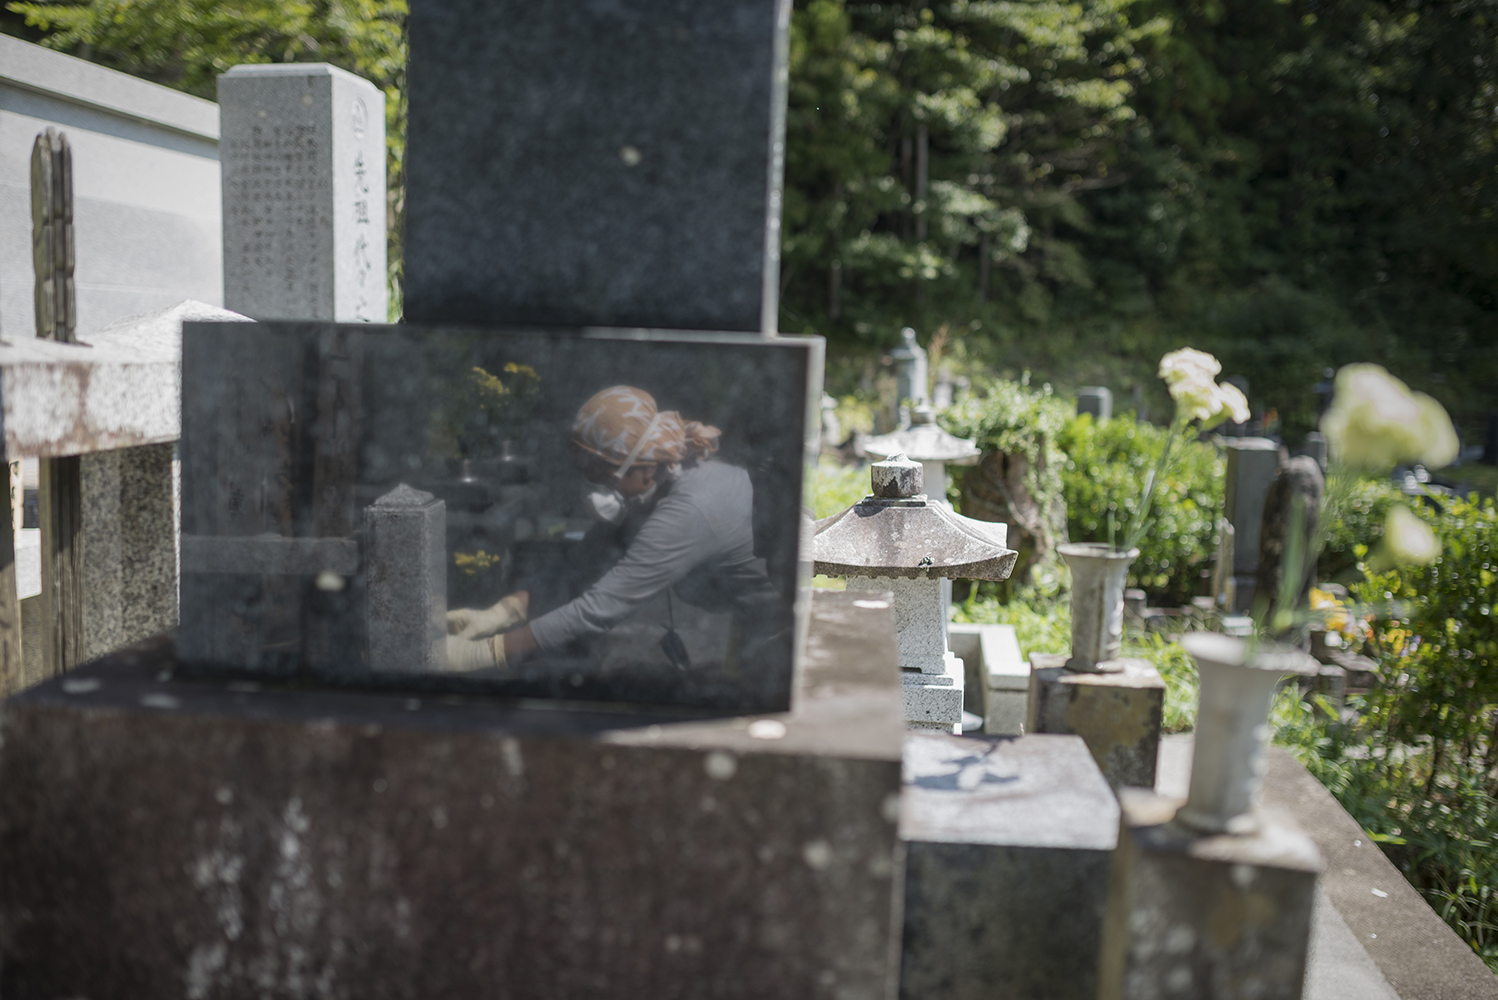 23 September 2017 - Evacuee and Fukushima survivor, Mrs Kanno at family grave in Tsushima, located in the exclusion zone of Namie, Fukushima prefecture. This area is closed for people to return to, however, the Japanese government plans to open a small area of Tsushima as early as 2023. The levels of radiation measured by Greenpeace in this highly contaminated area mean that it will be many decades and beyond the end of the century before radiation levels will even approach government targets.